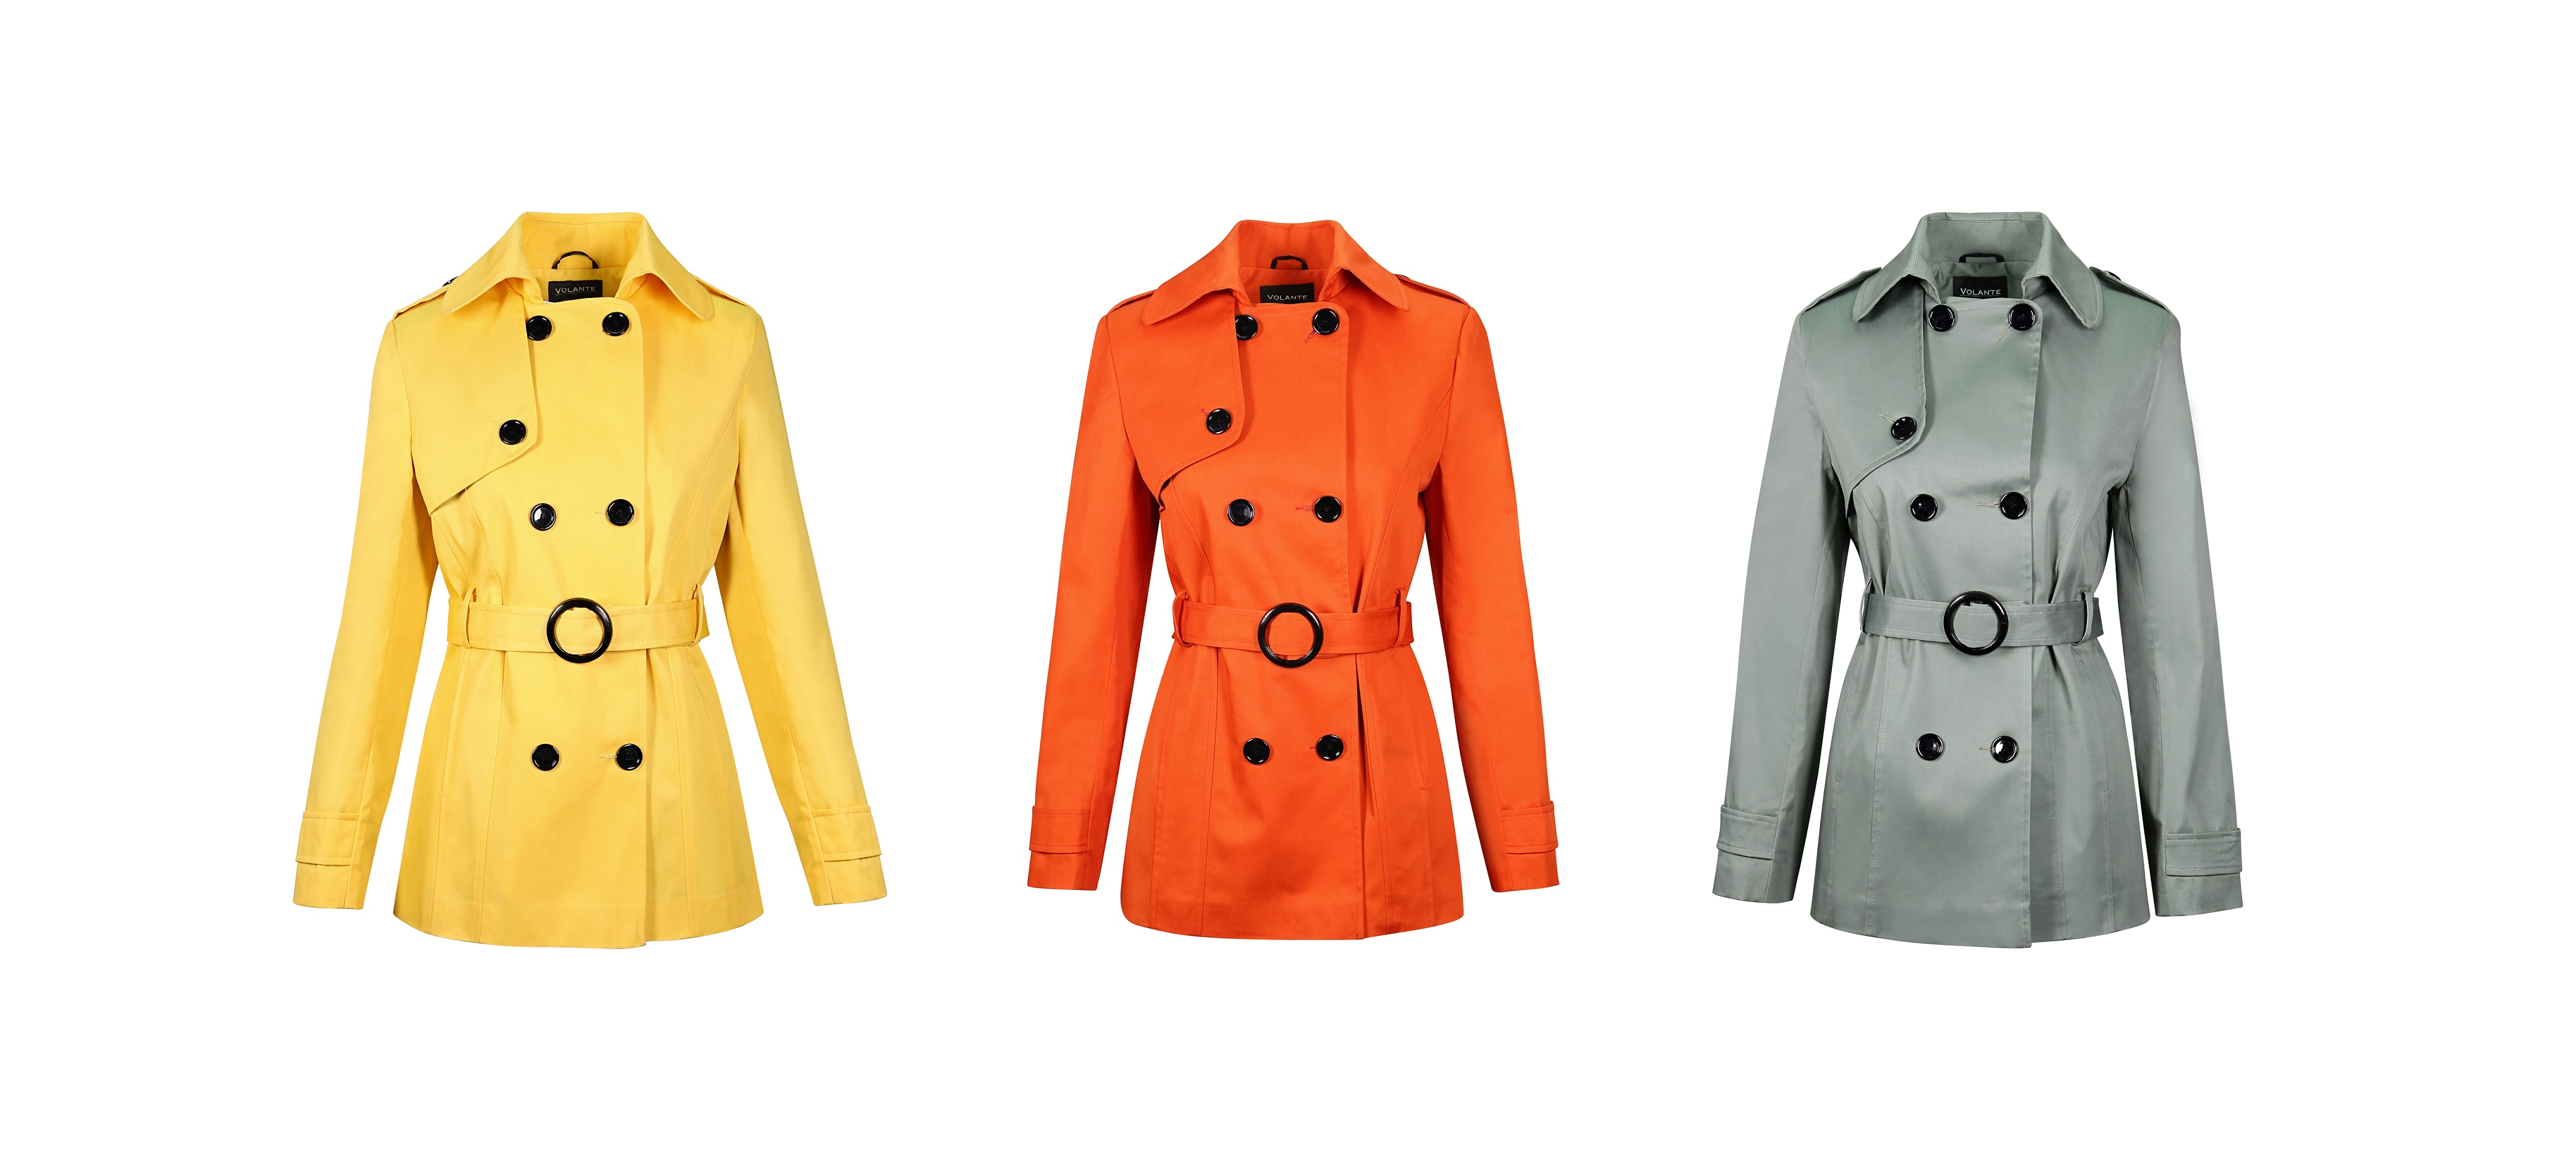 Mac-coats-50-80 Seeing is believing: images & e-commerce